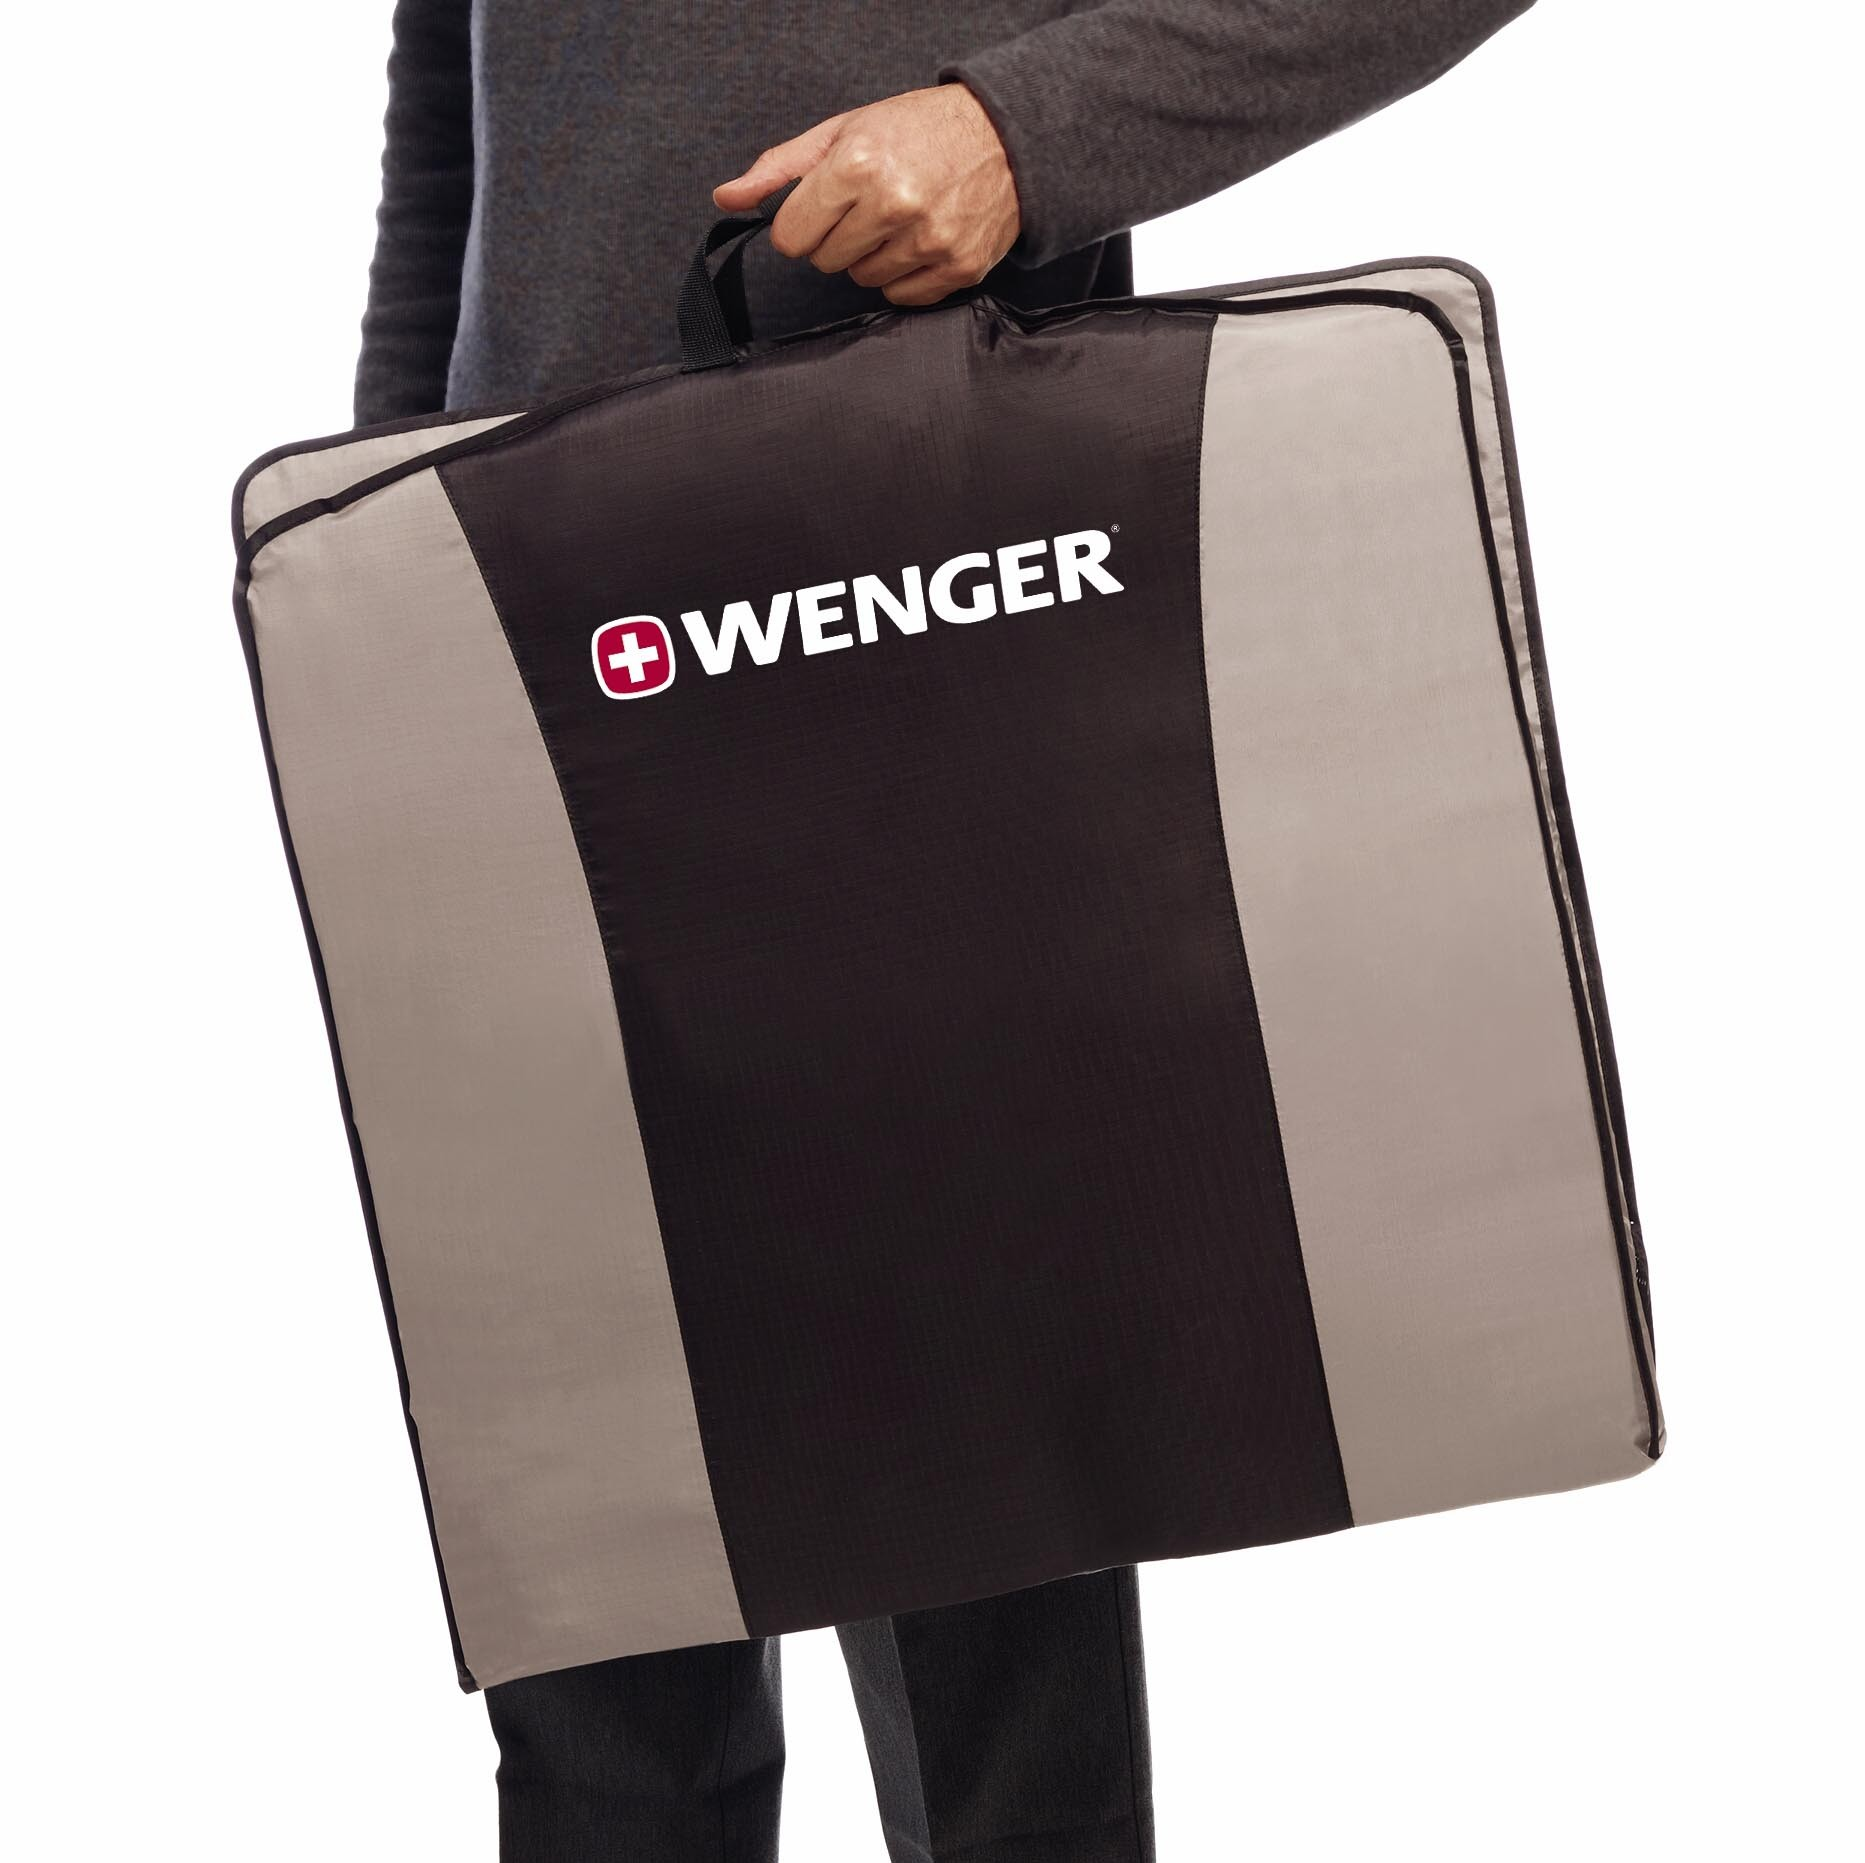 Wenger Garment Carrier